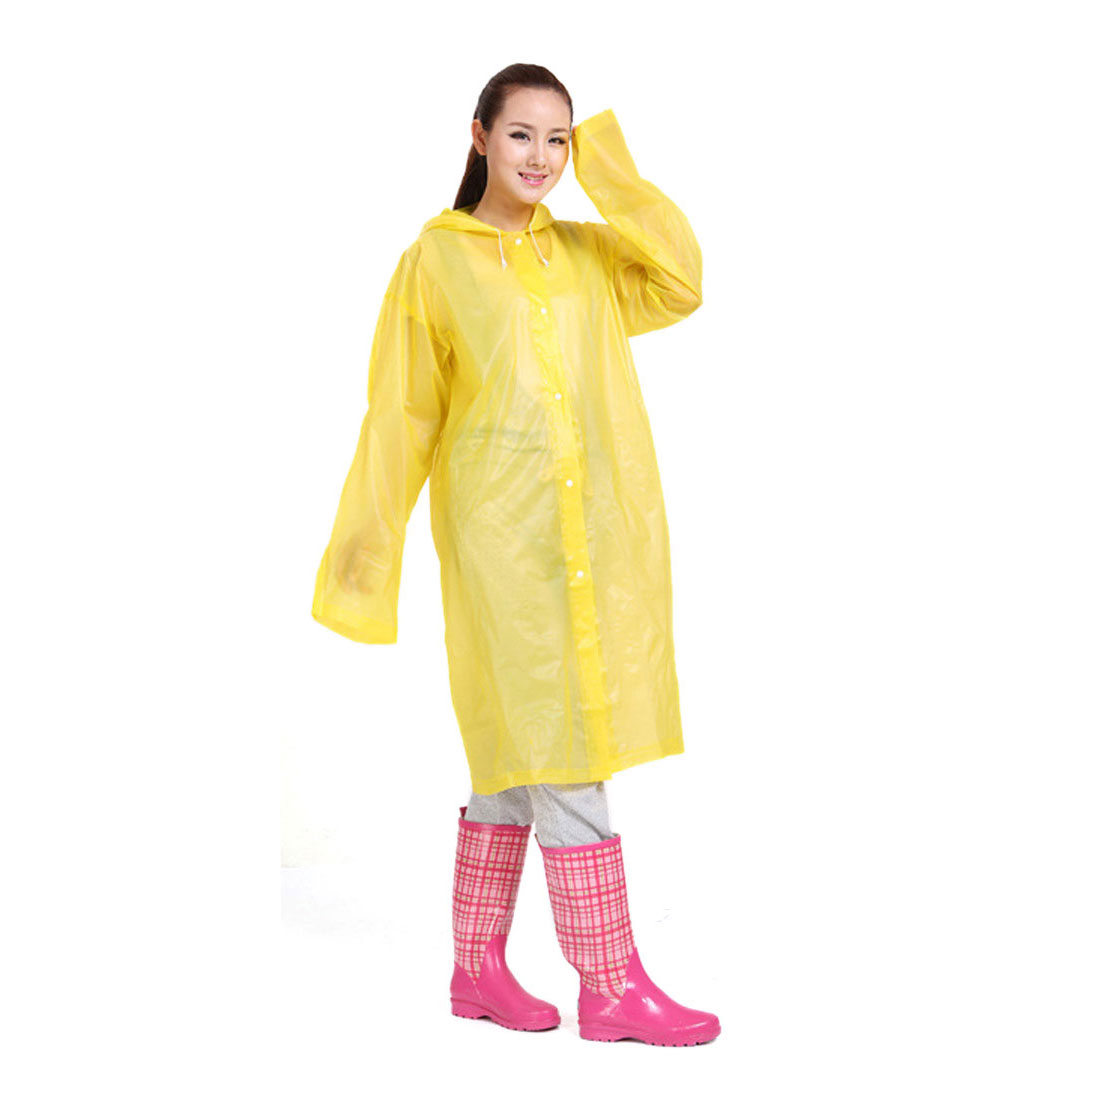 M Yellow Portable EVA Waterproof Adult Raincoat Hooded Rain Poncho for Bicycle